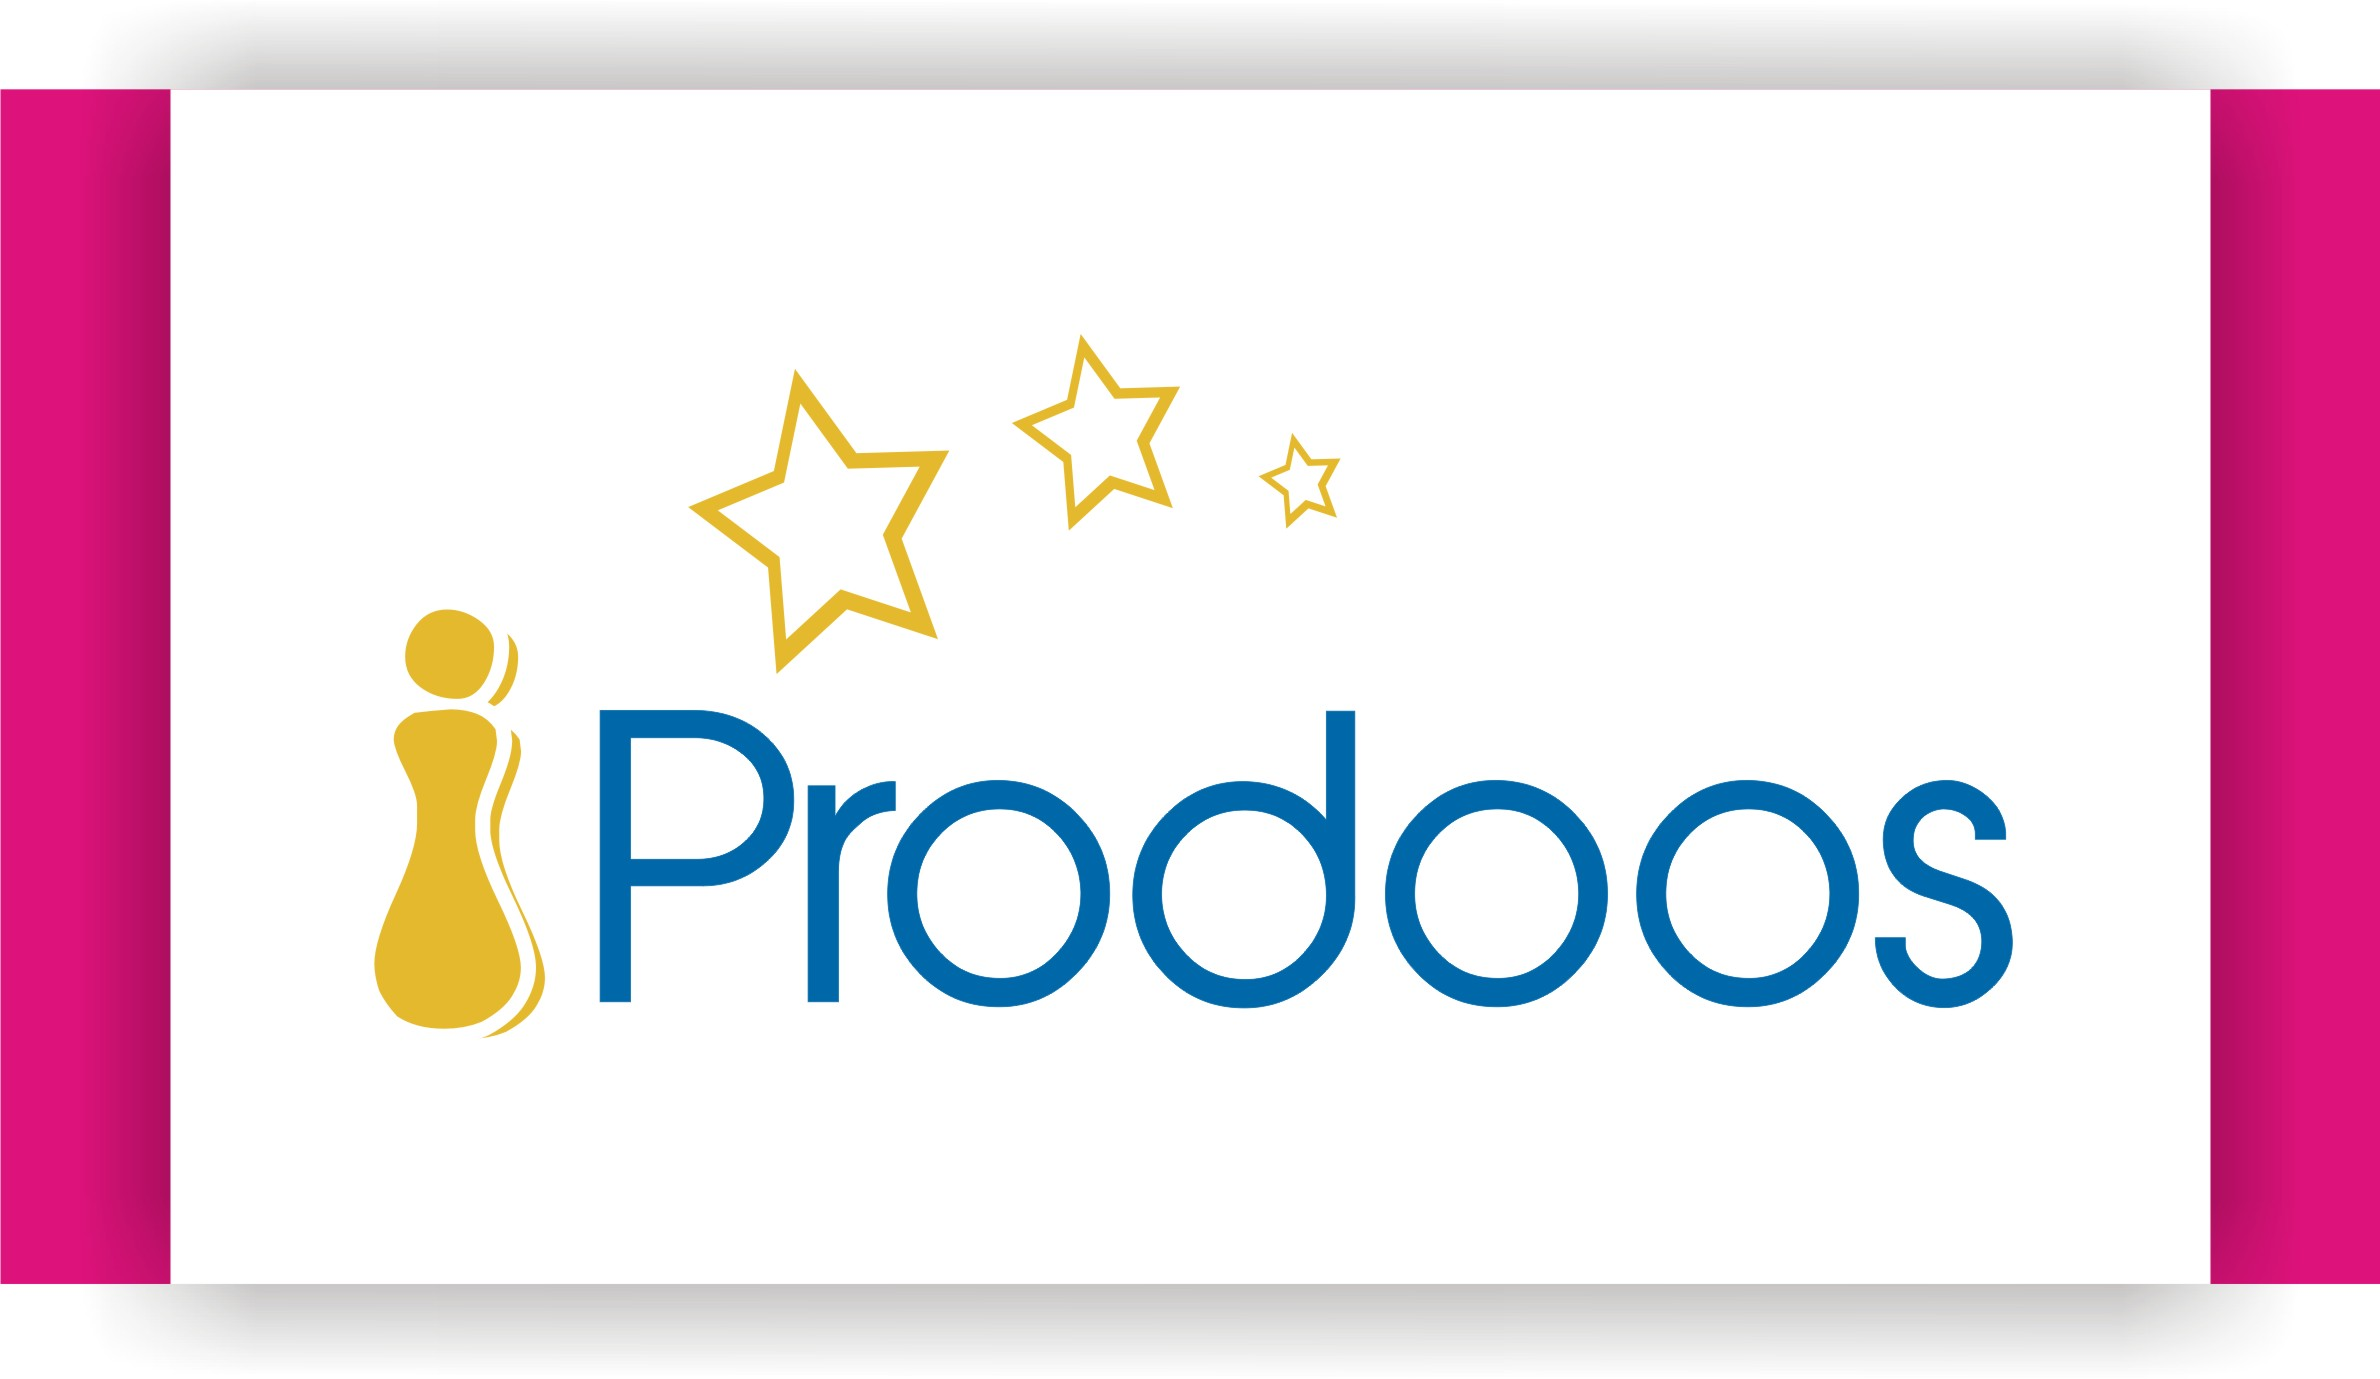 Logo Design by Shailender Kumar - Entry No. 71 in the Logo Design Contest New Logo Design for iProdoos.